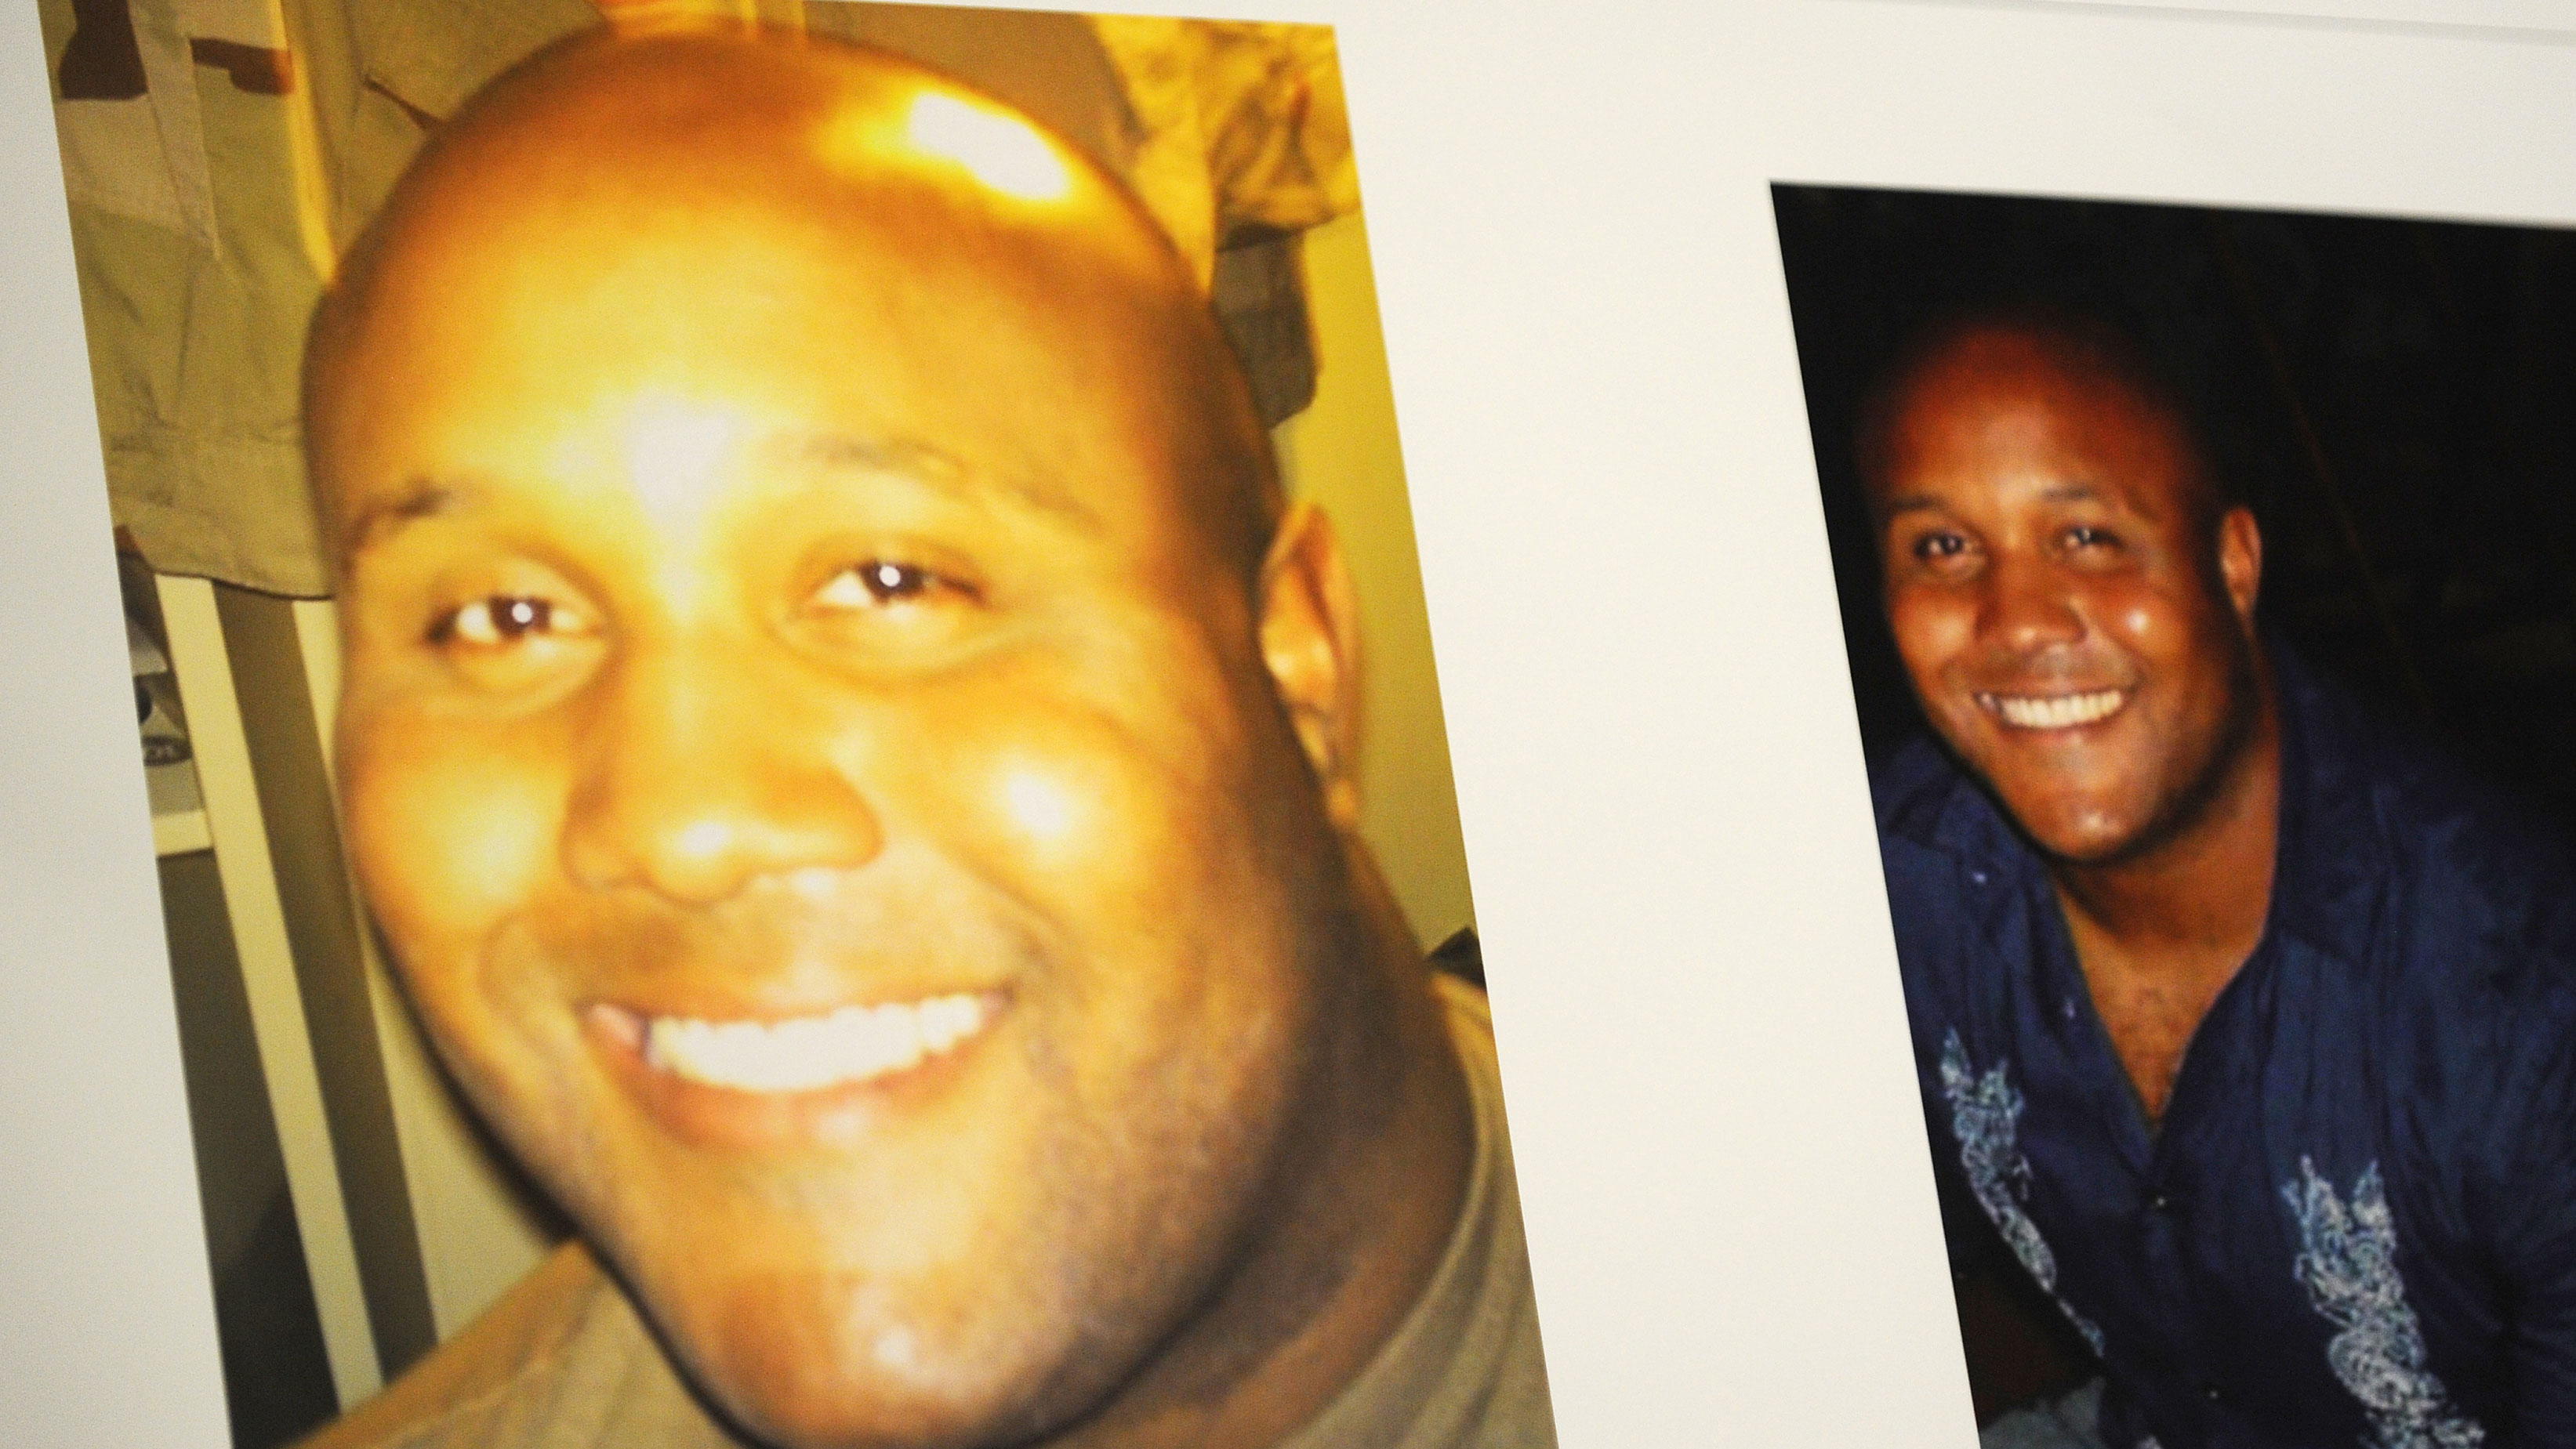 PHOTO: Images used during a press conference on the manhunt for ex-LAPD cop Christopher Dorner.